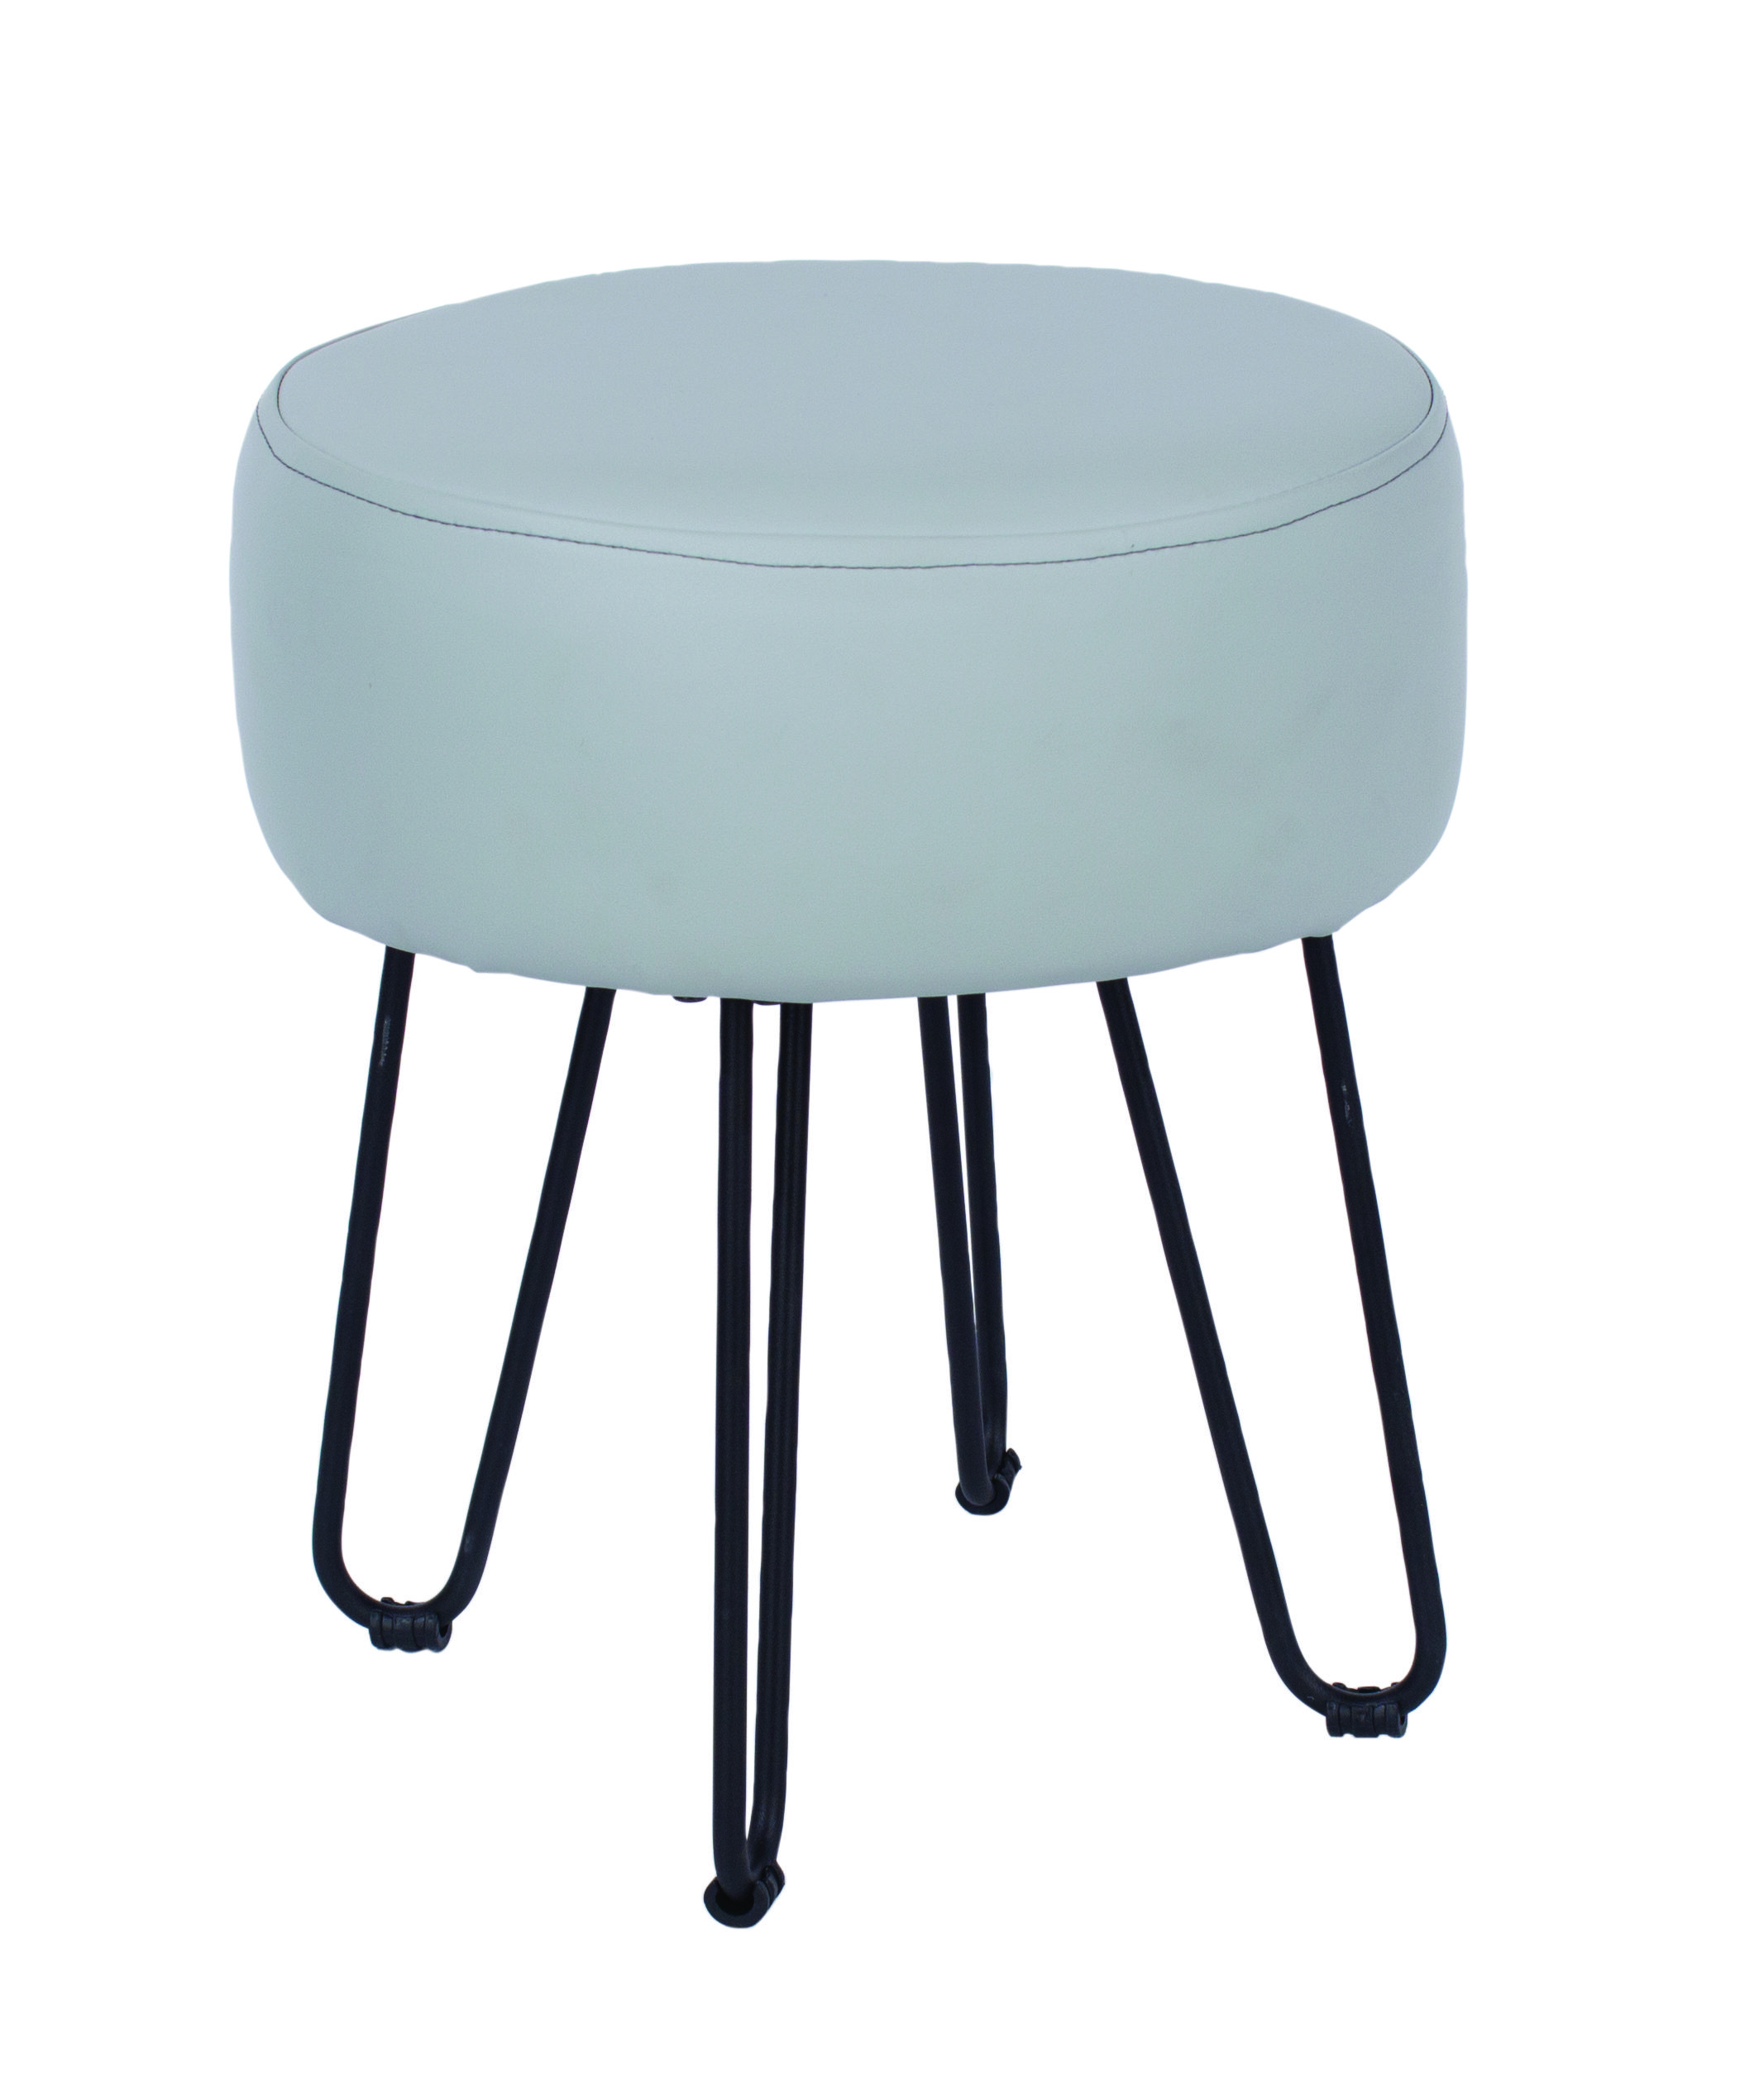 Furry grey PU upholstered round stool with black metal legs